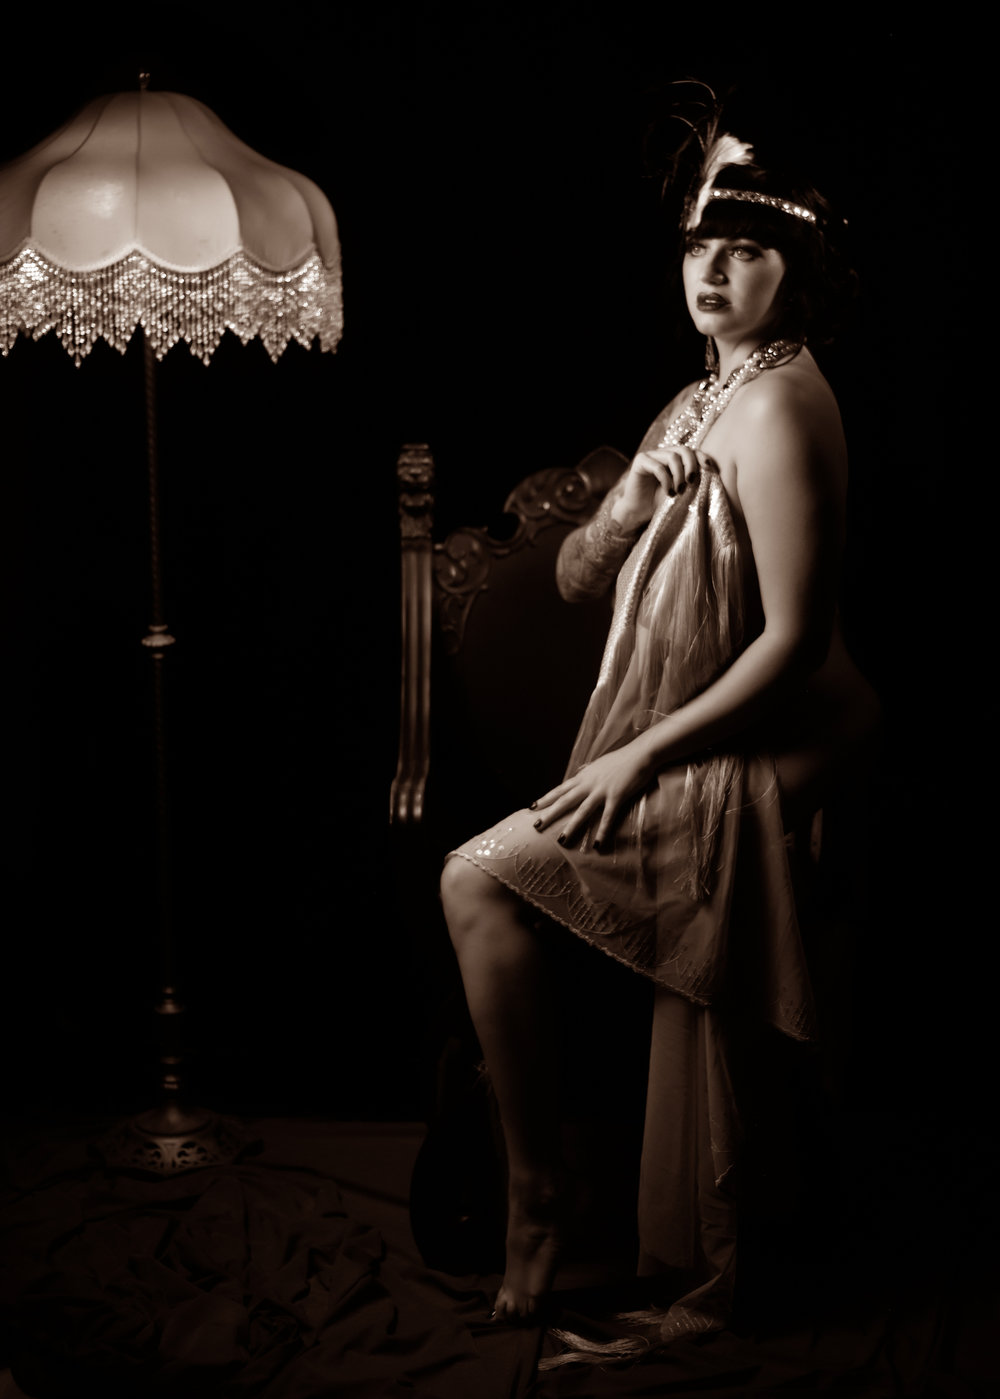 Vintage Photographer Denver 1920s Style by La Photographie 06.jpg